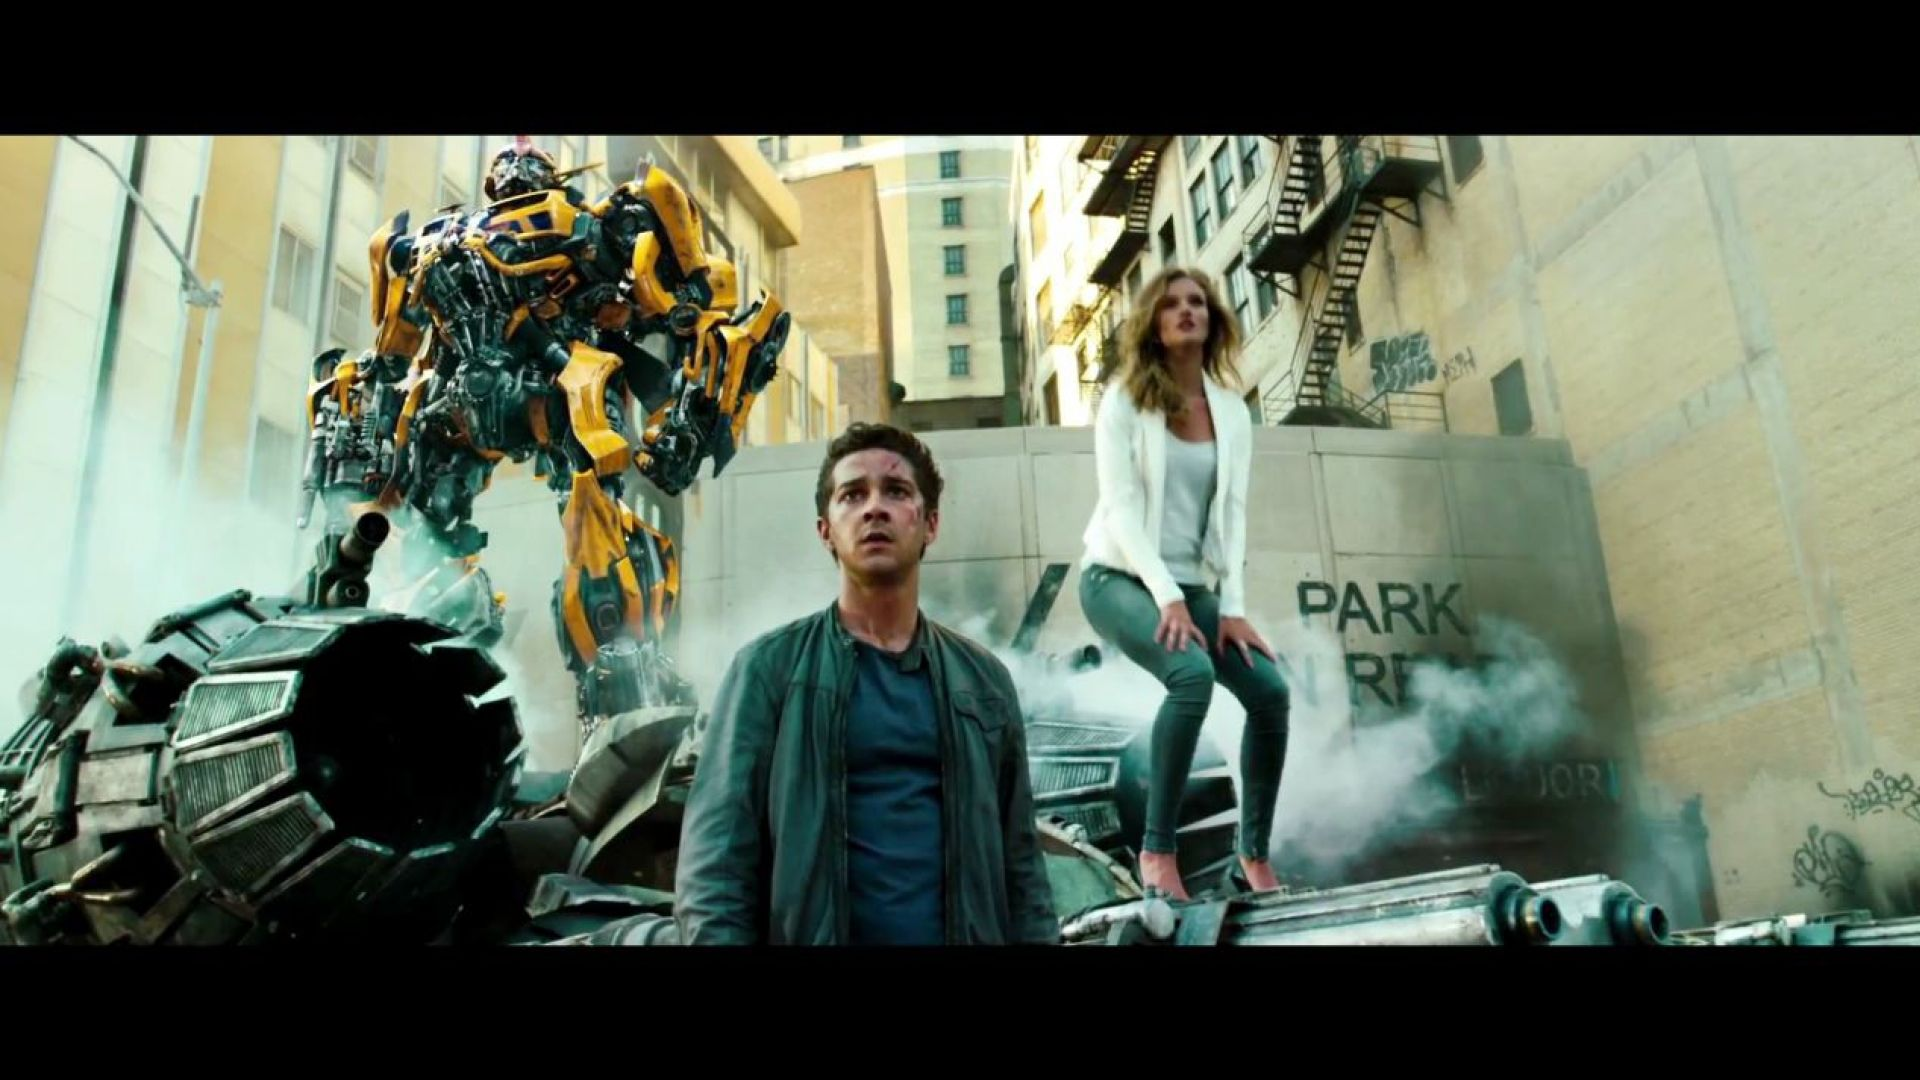 Linkin Park - Transformers 3: Dark of the Moon Music Video